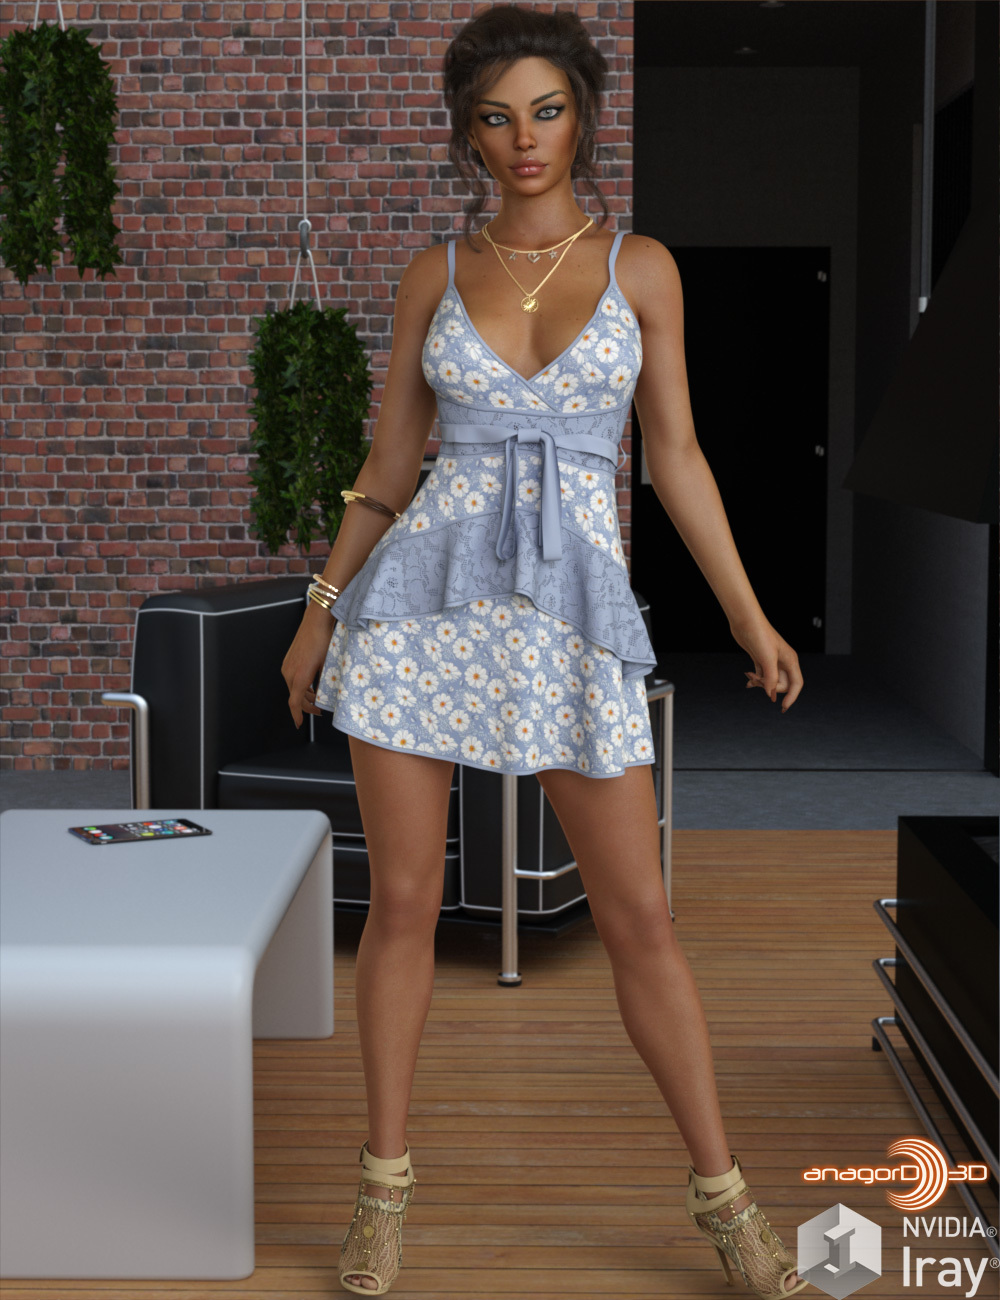 VERSUS - dForce Leah Candy Dress Outfit for Genesis 8 Female(s) by Anagord